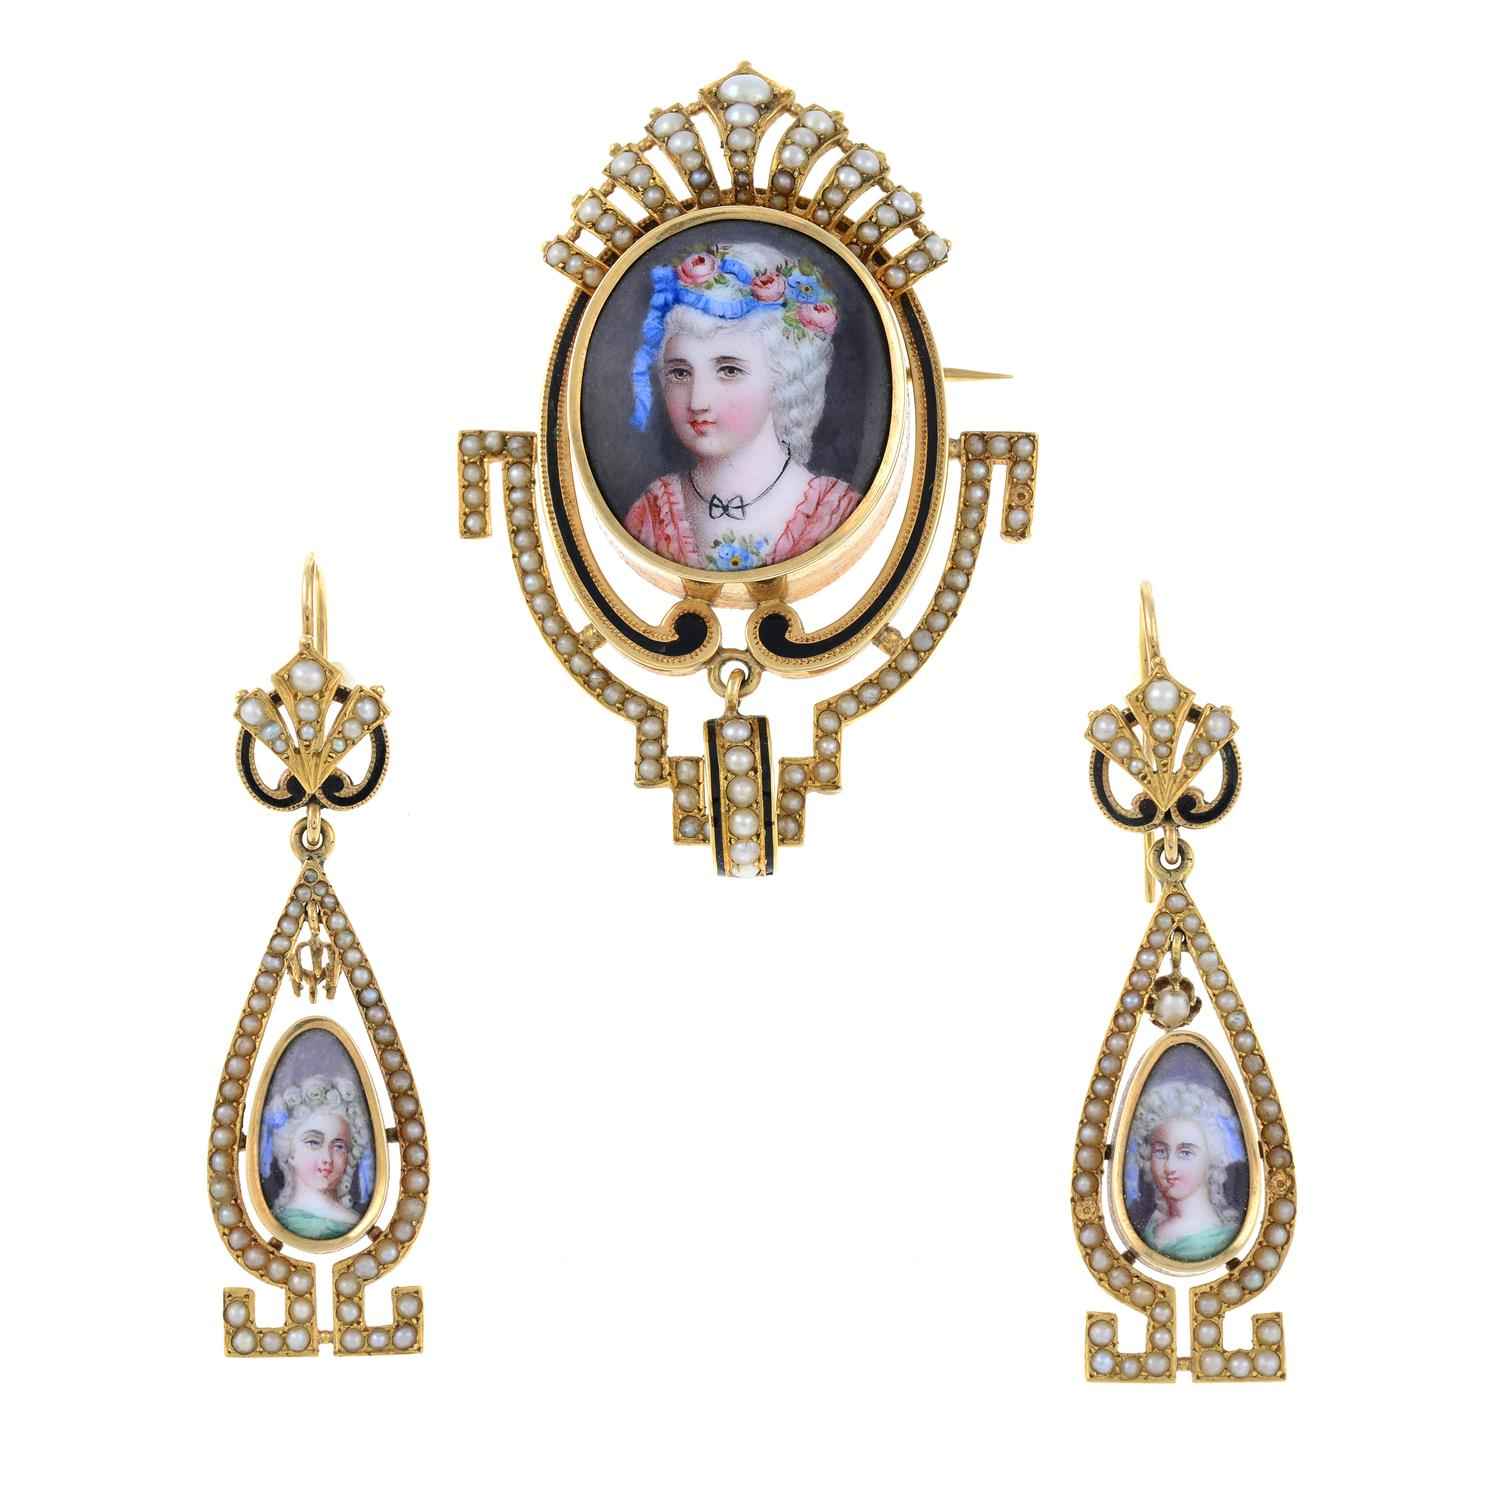 A late 19th century gold, enamel portrait and split pearl brooch, with matching earrings. - Image 2 of 6